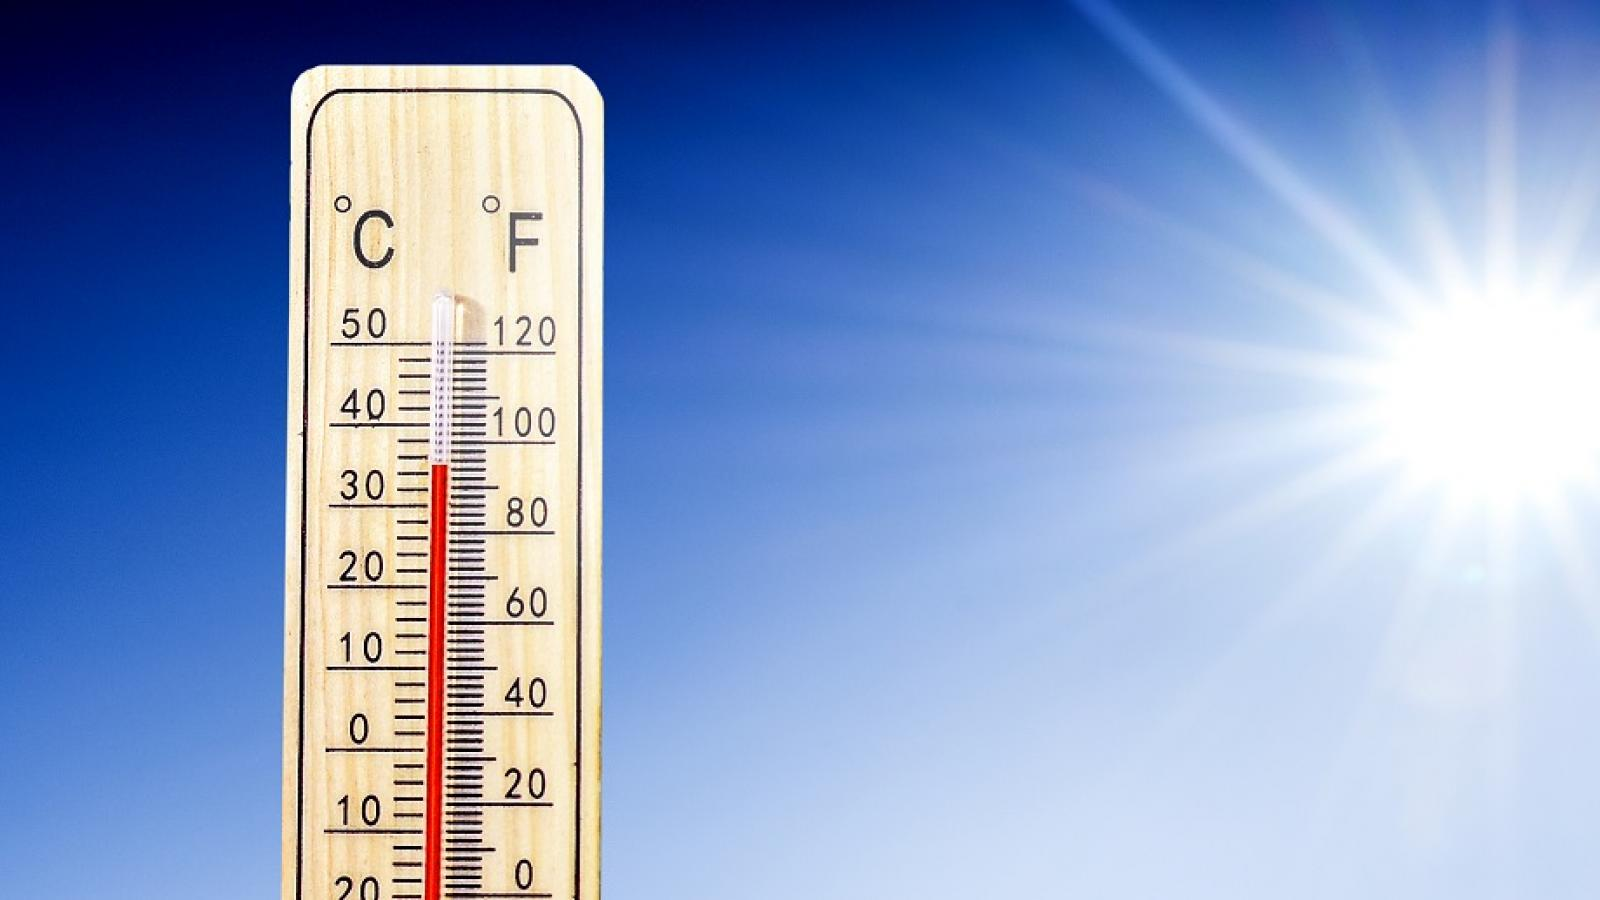 How to prevent heat illness at work